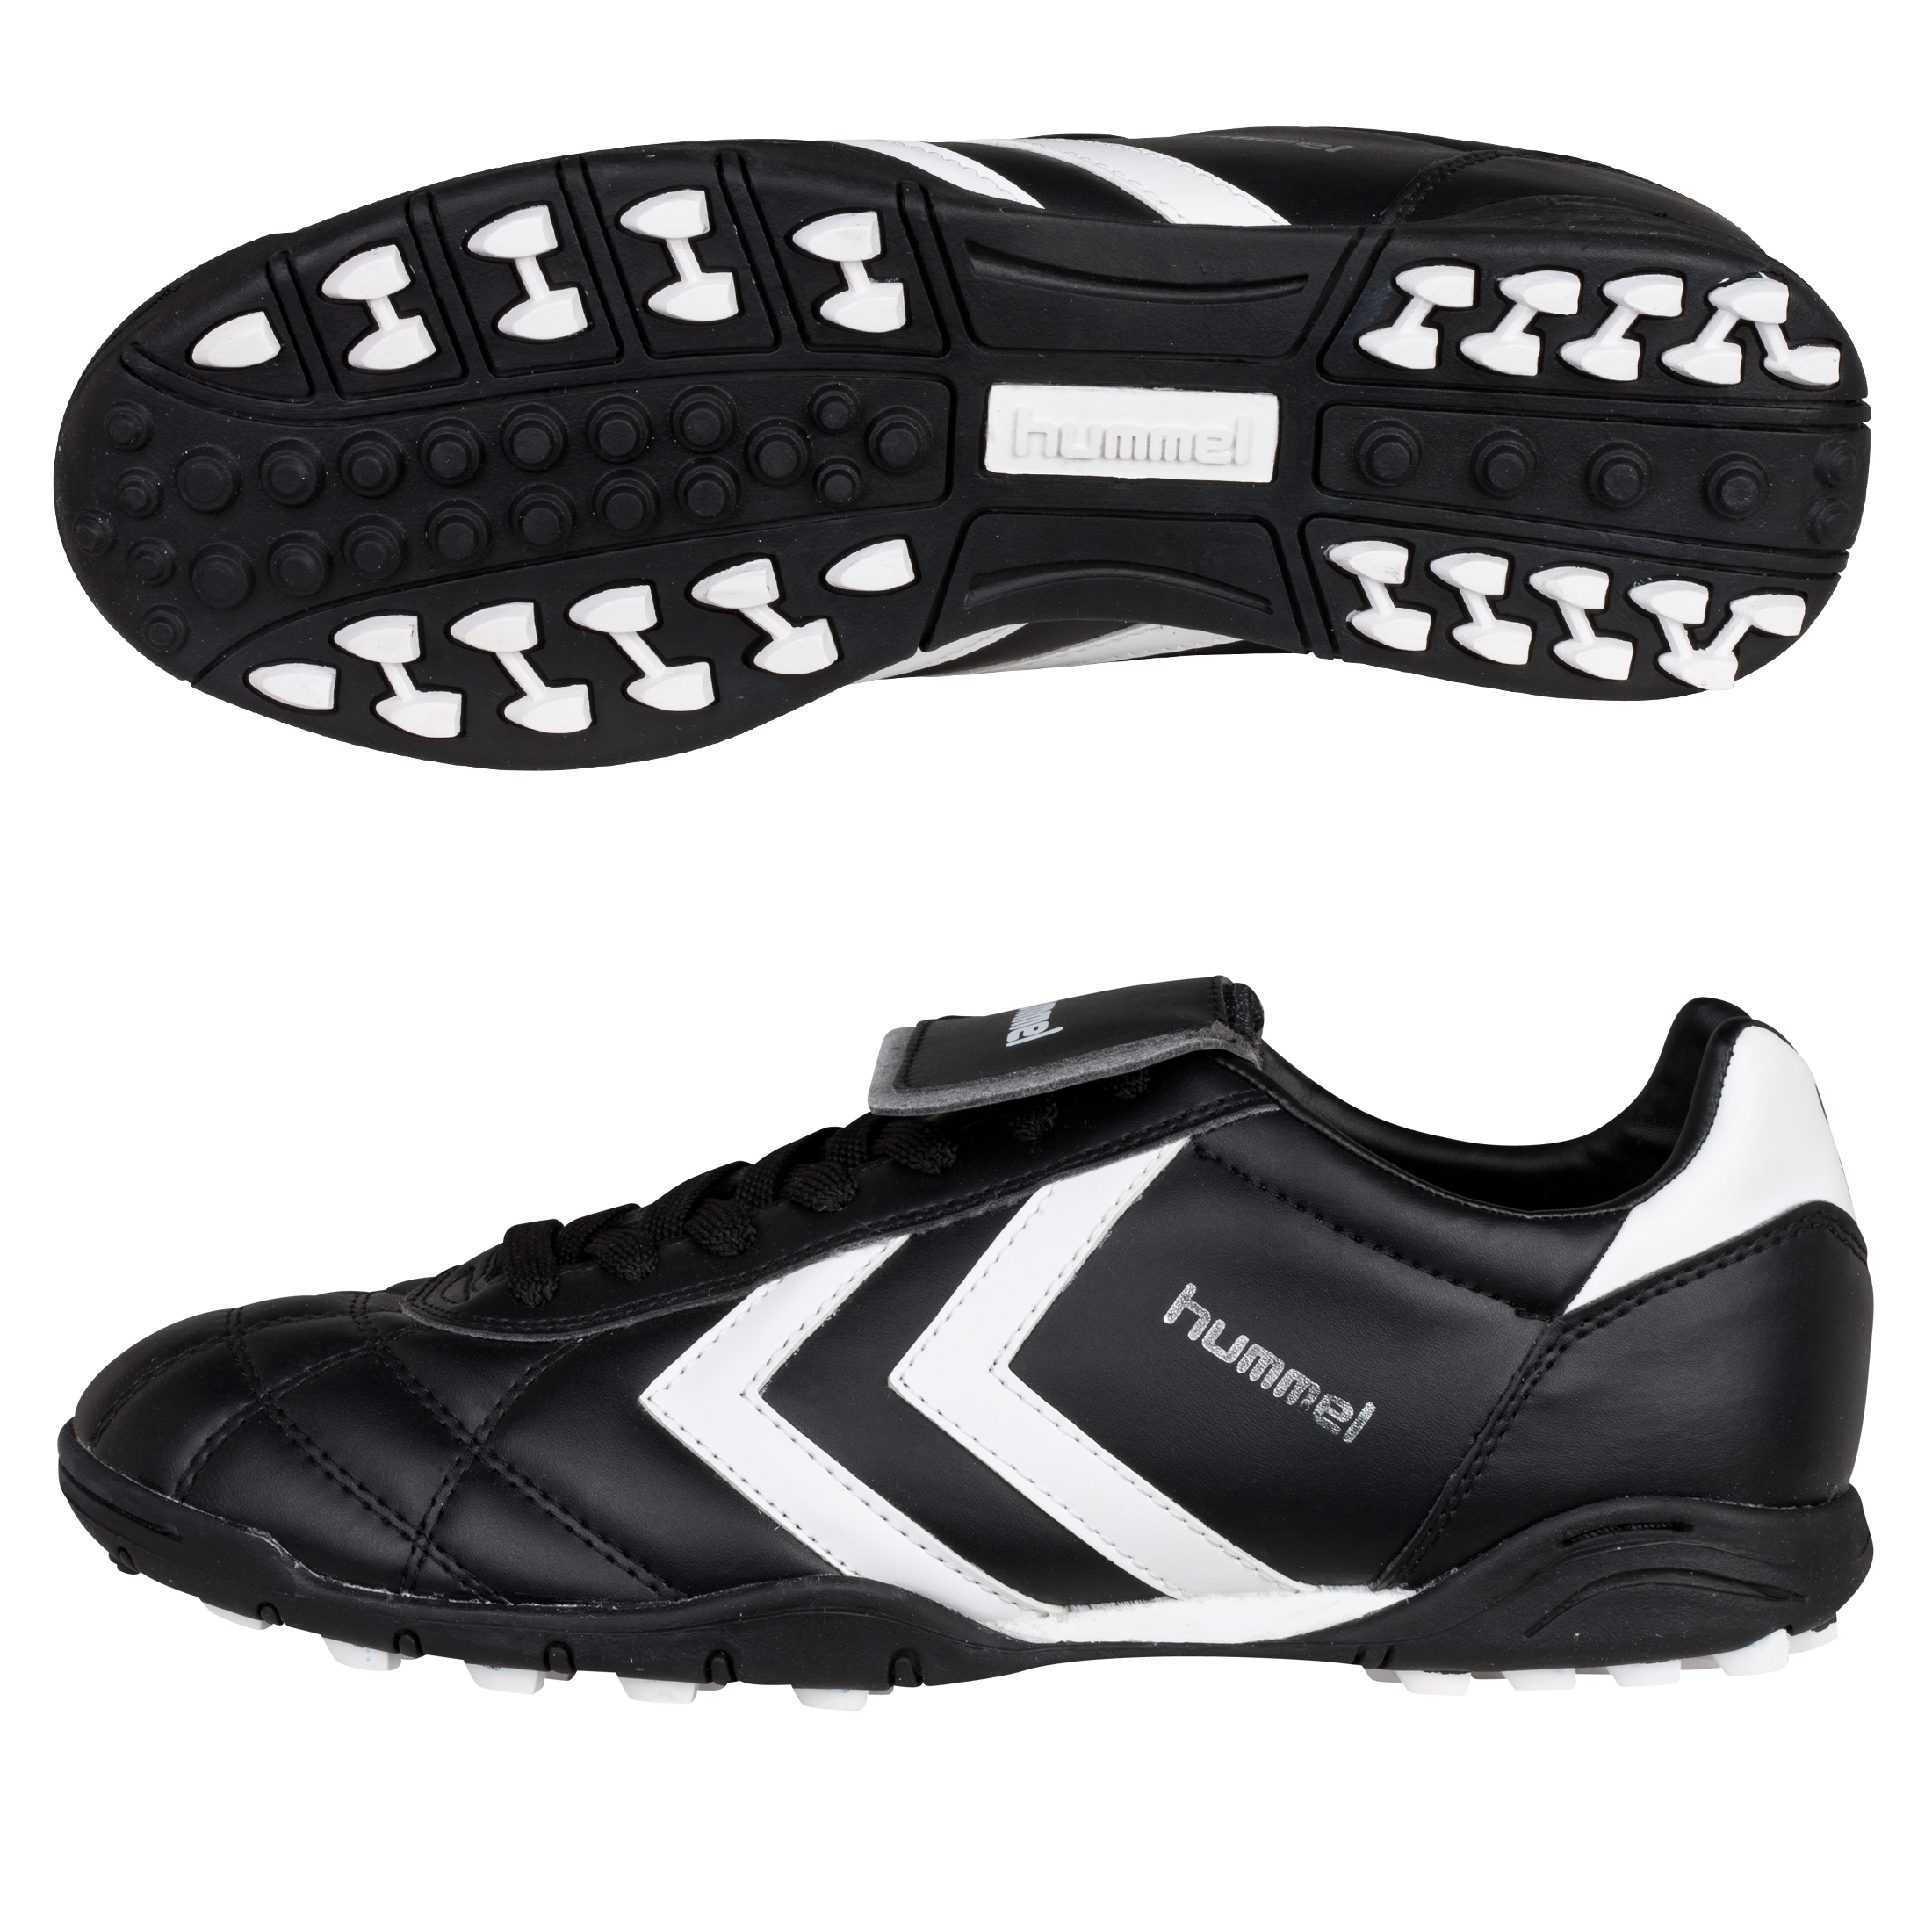 Hummel Old School Star Astro Turf Black/White